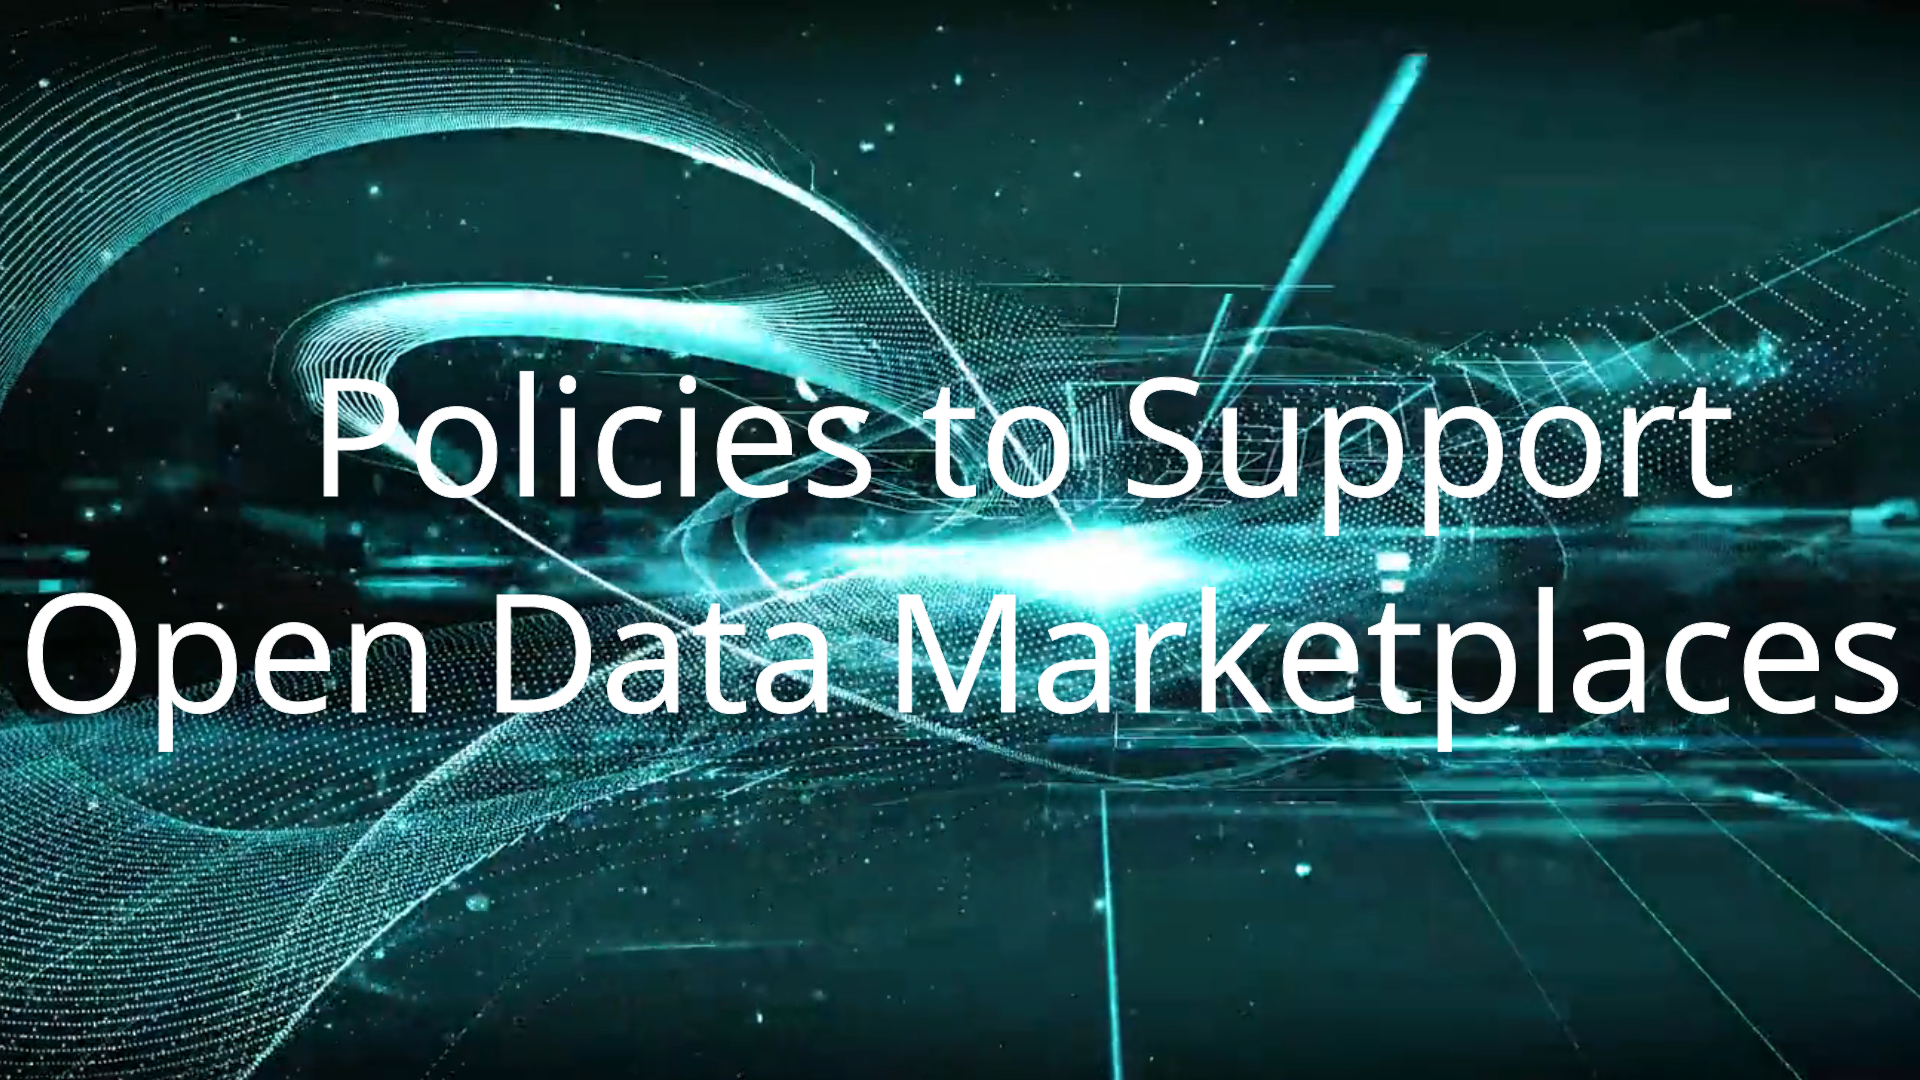 Policies to support open data marketplaces general video. The Hague 2020